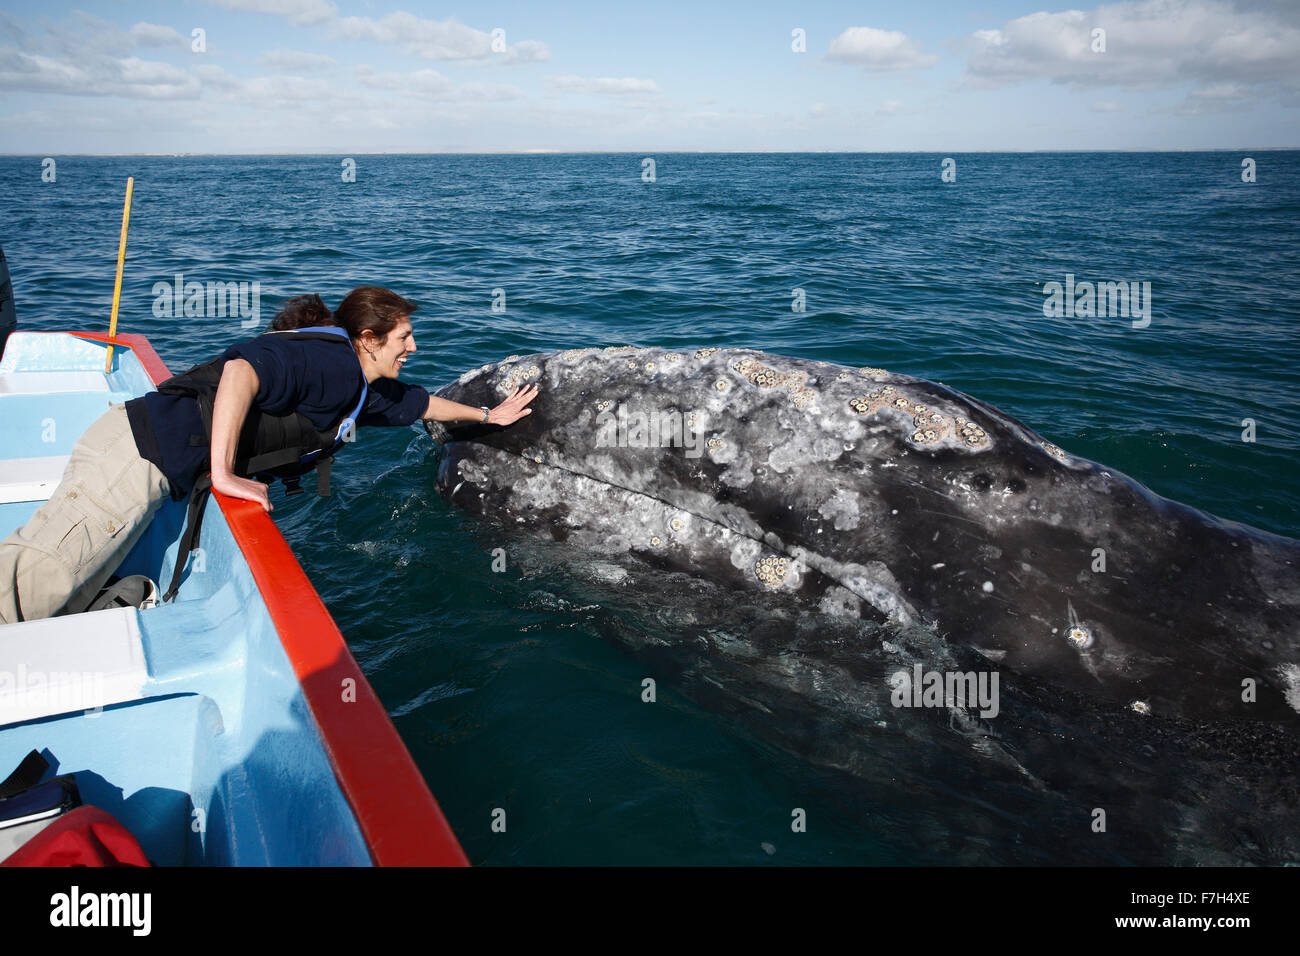 pr7061-D. Gray Whale (Eschrichtius robustus) swims alongside boat and seeks out touch of lucky tourist (model released). - Stock Image